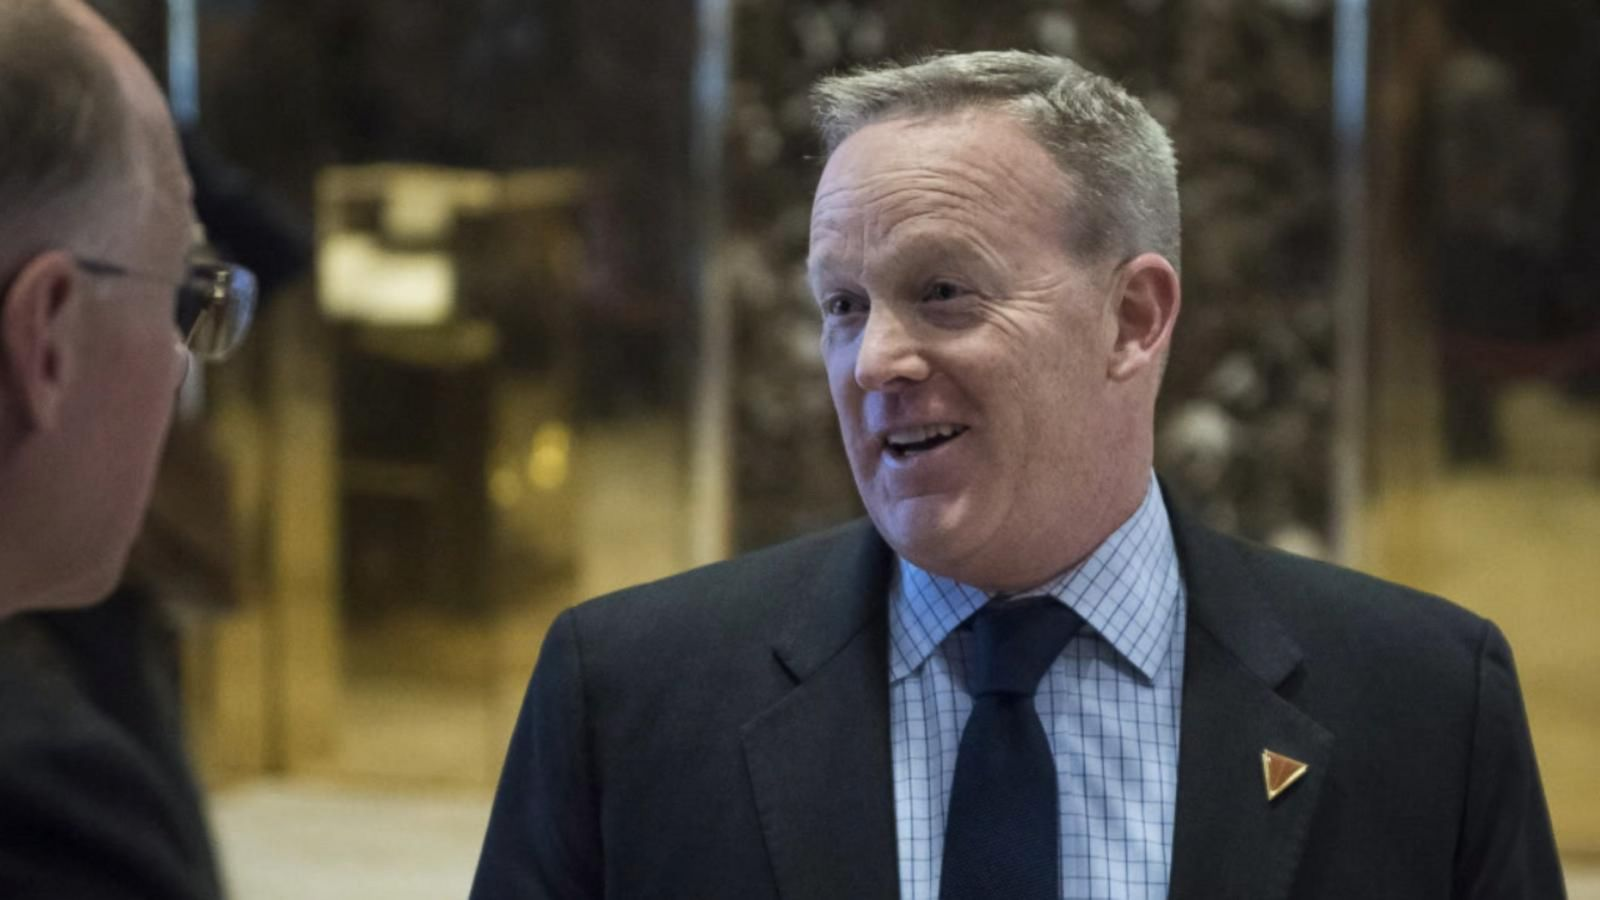 Sean Spicer: Everything You Need to Know